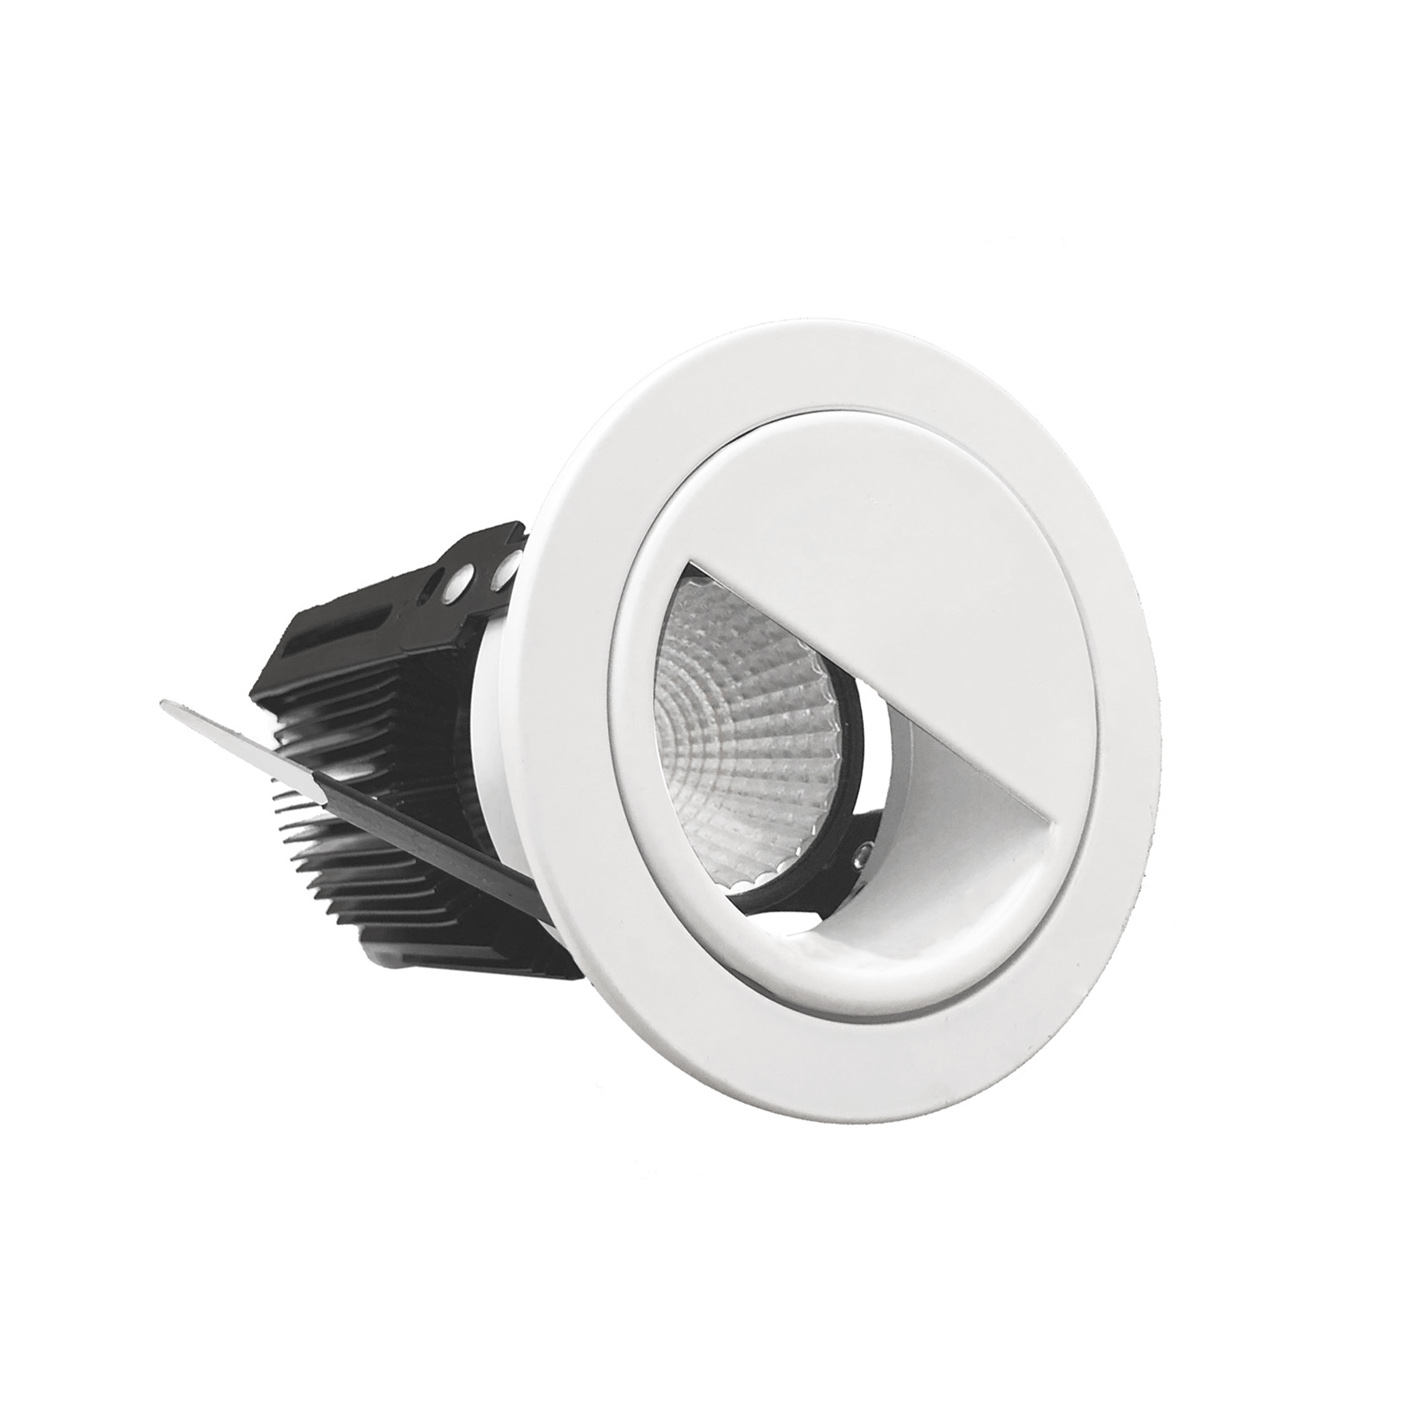 -Downlight empotrable LED de 15W adaptador de haz de luz de una media luna en forma incluyendo Fi1-A15-15W